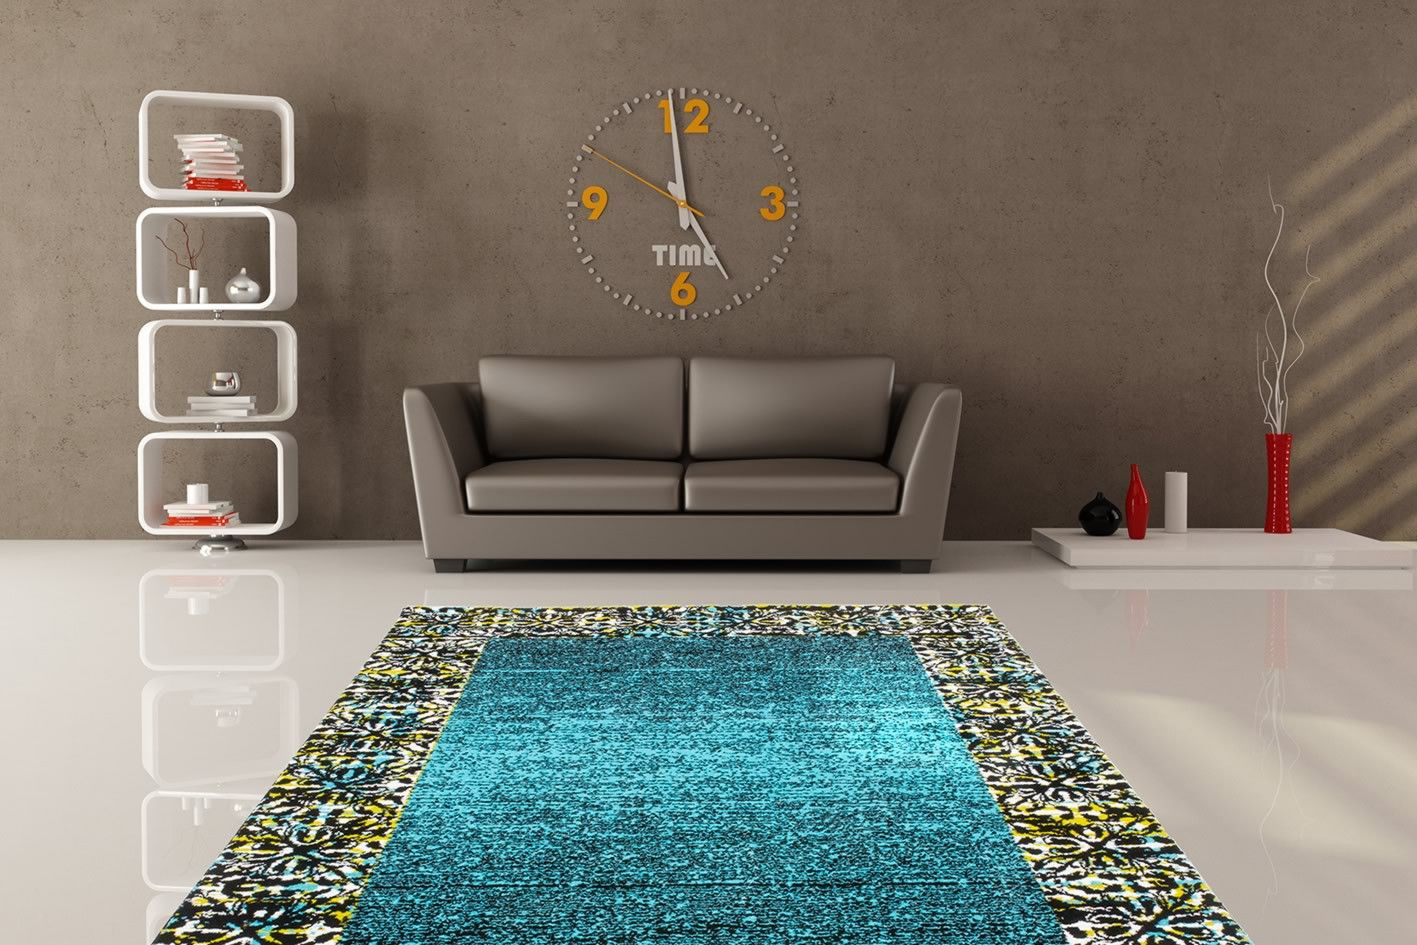 redoutable tapis salon bleu turquoise deci tapis salon. Black Bedroom Furniture Sets. Home Design Ideas